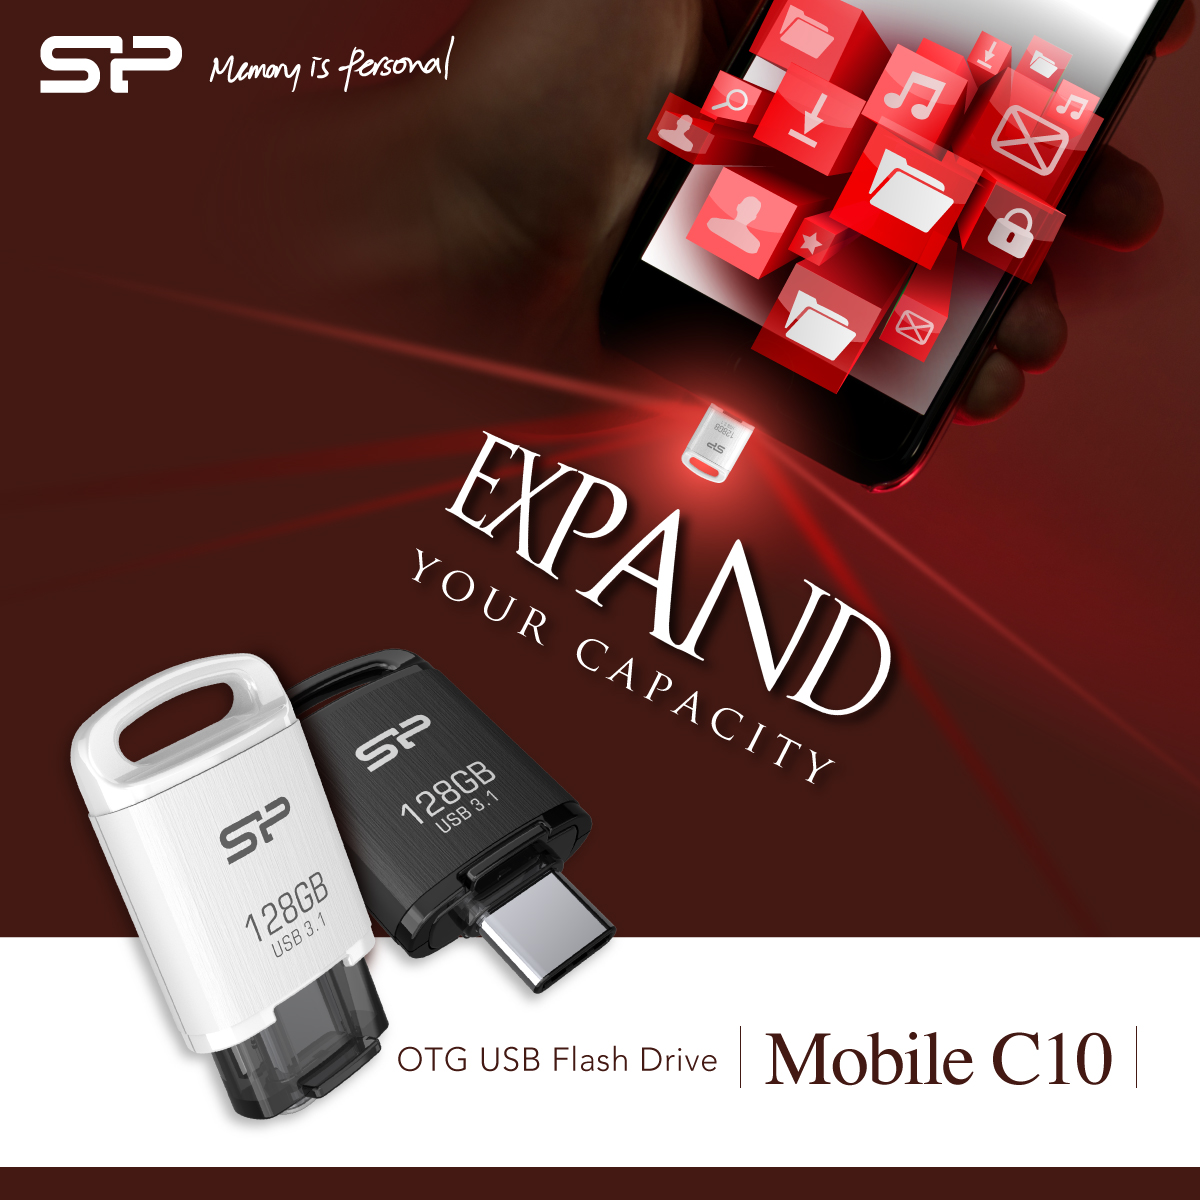 SP Launches Solution for Instant Type-C Storage Expansion, Mobile C10